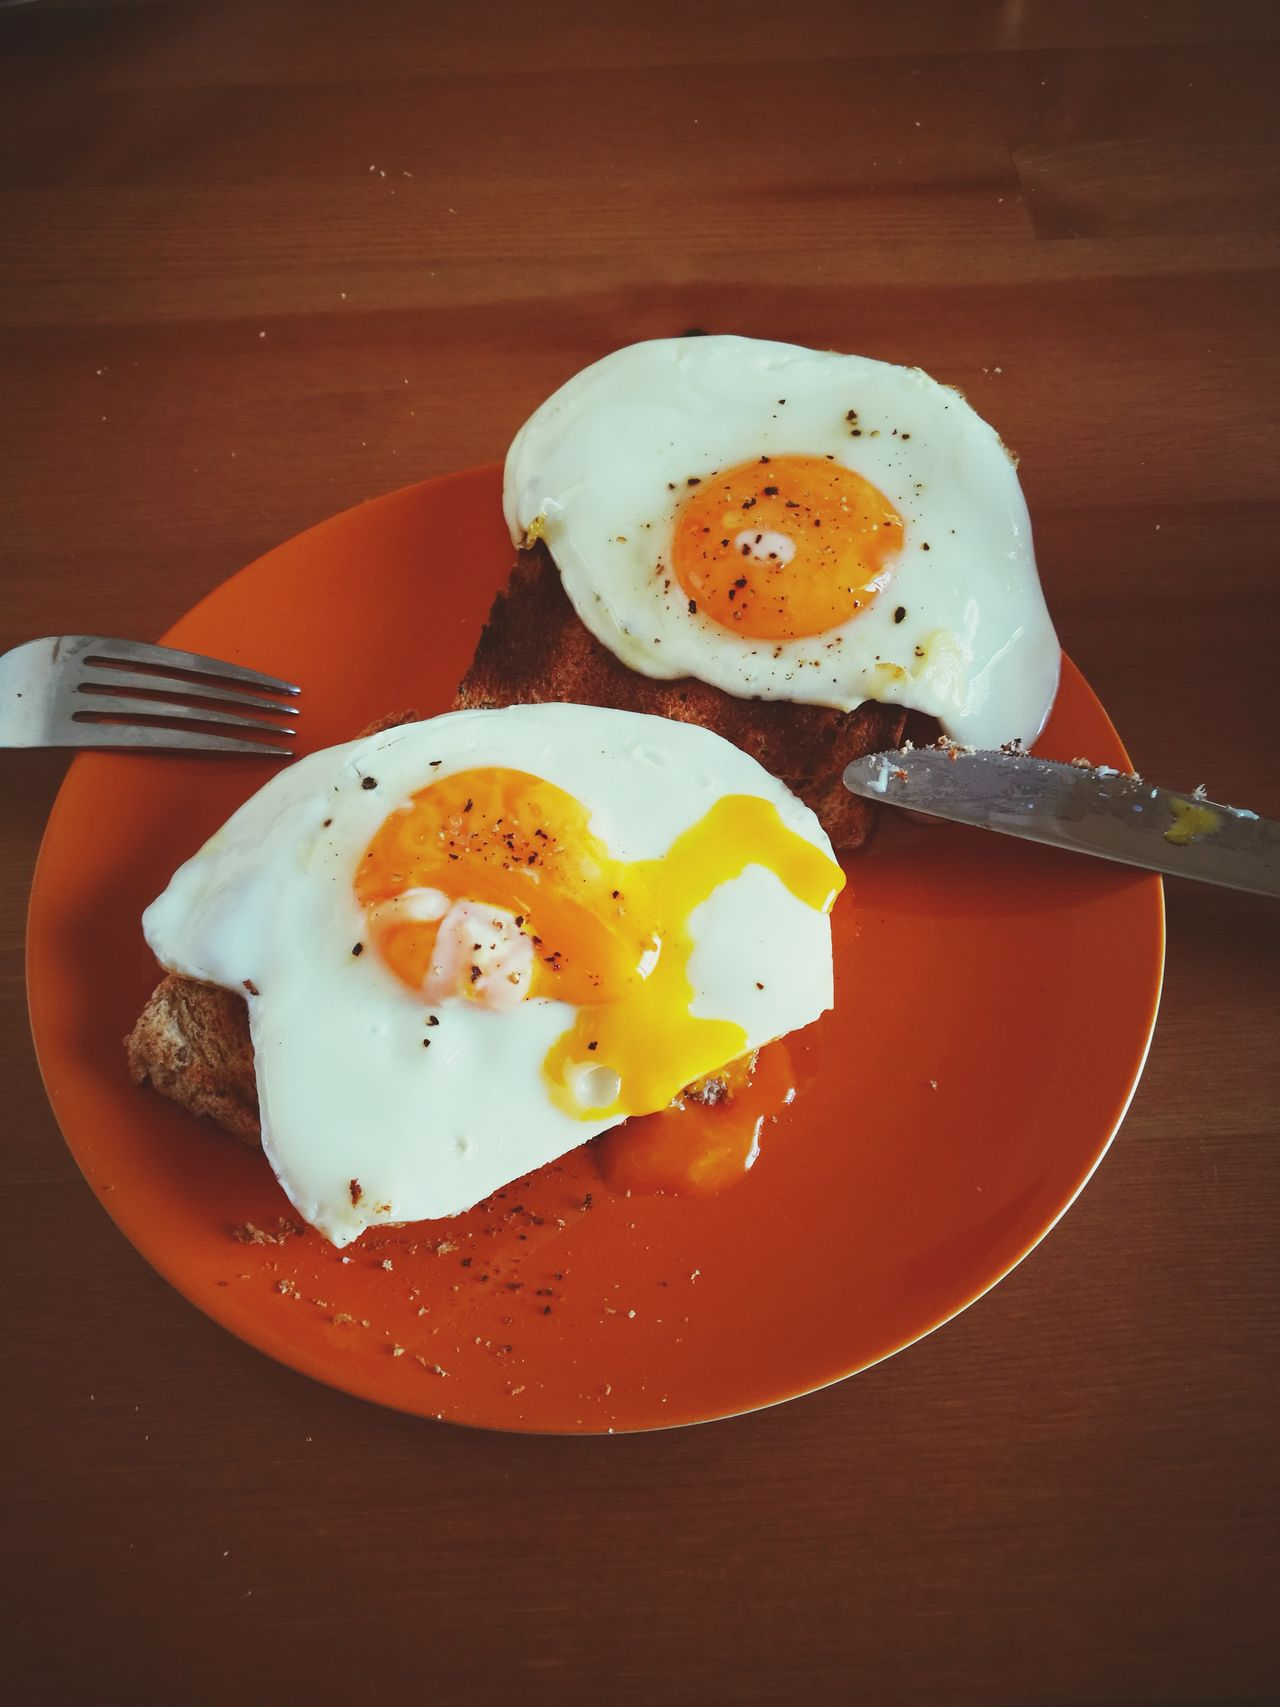 Breakfast Fried Egg Egg Egg Yolk Sunny Side Up Plate Food Ready-to-eat Morning Food And Drink English Breakfast Fried Egg White Toasted Bread Indoors  Bacon No People Table Close-up Freshness